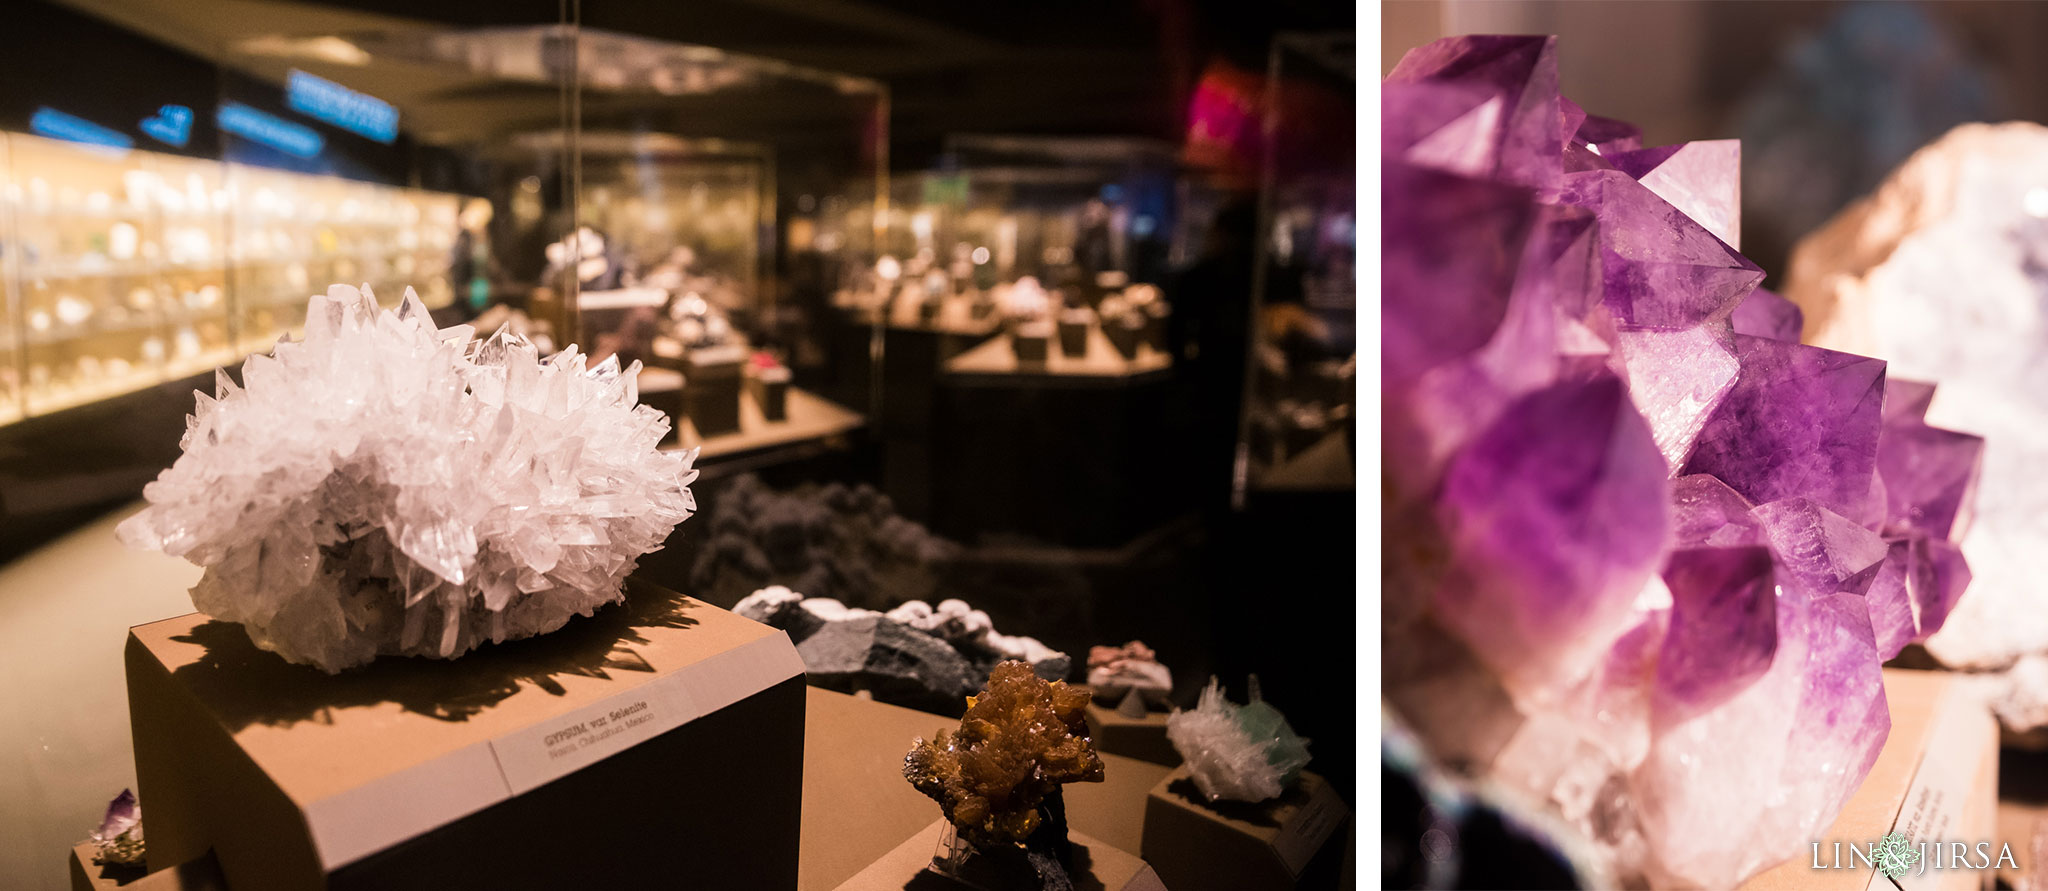 21 los angeles natural history museum wedding photography